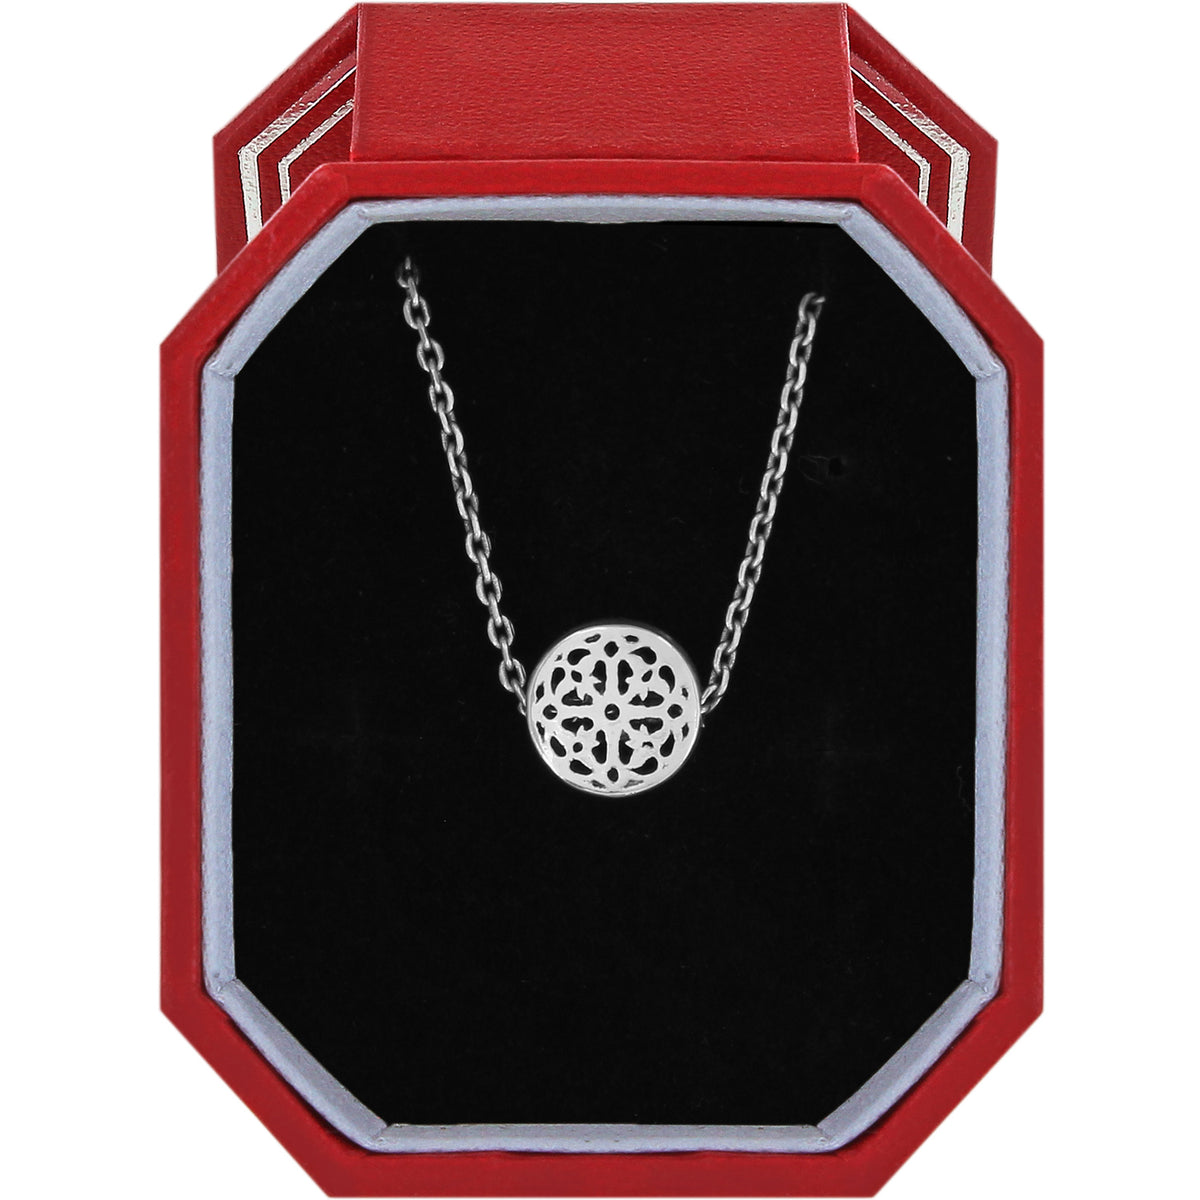 Brighton Ferrara Mini Necklace Gift Box